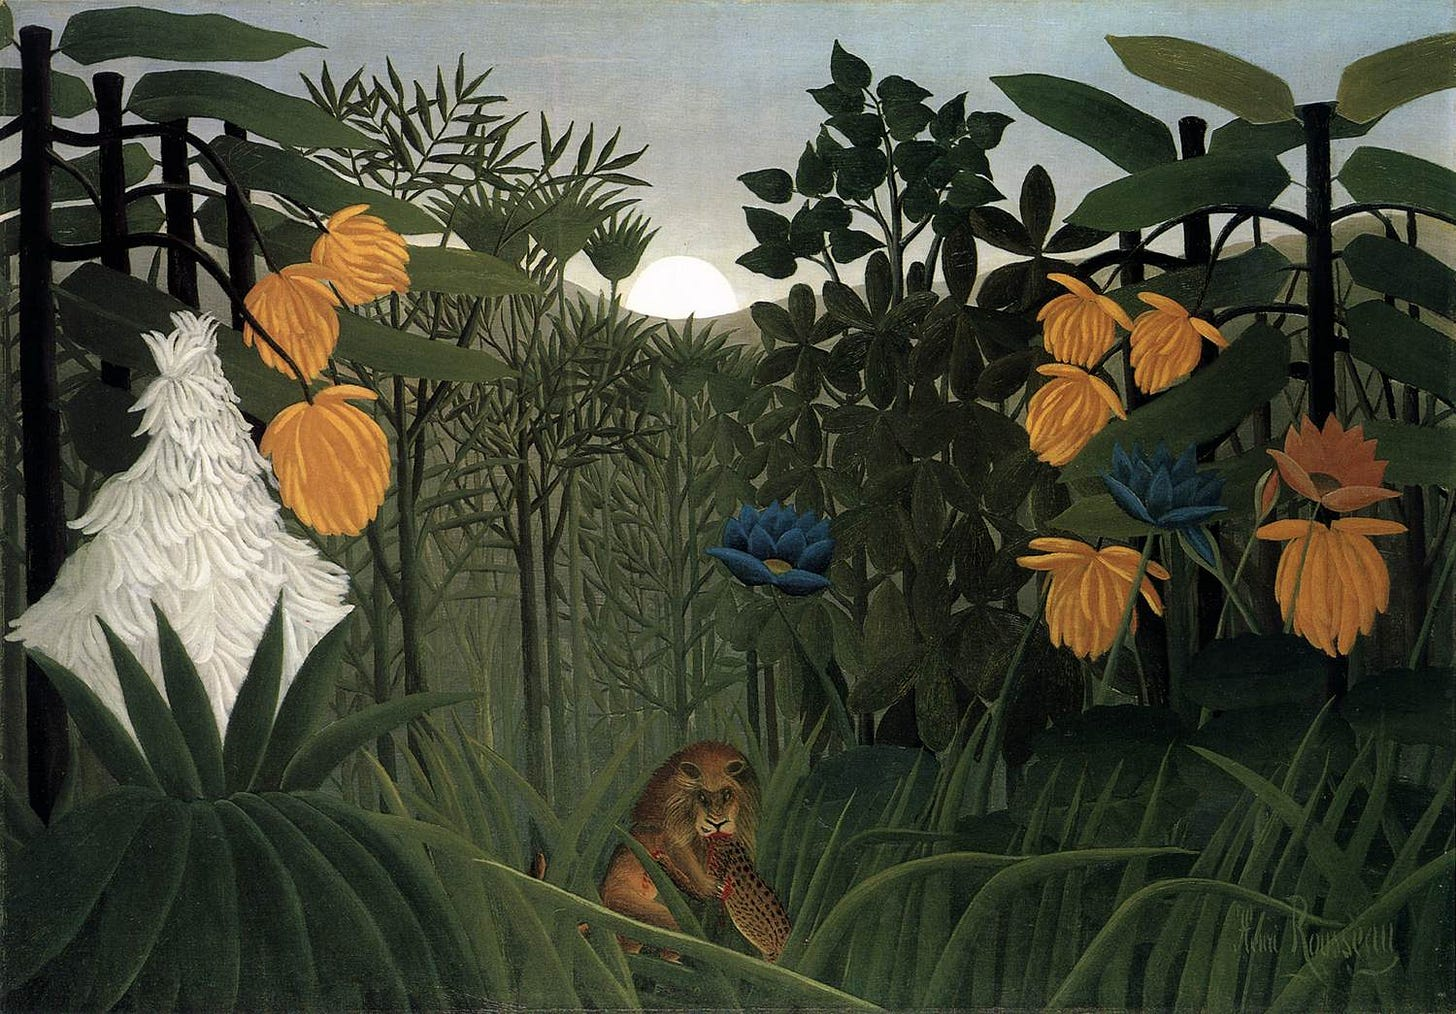 File:Henri Rousseau - The Repast of the Lion.jpg - Wikimedia Commons